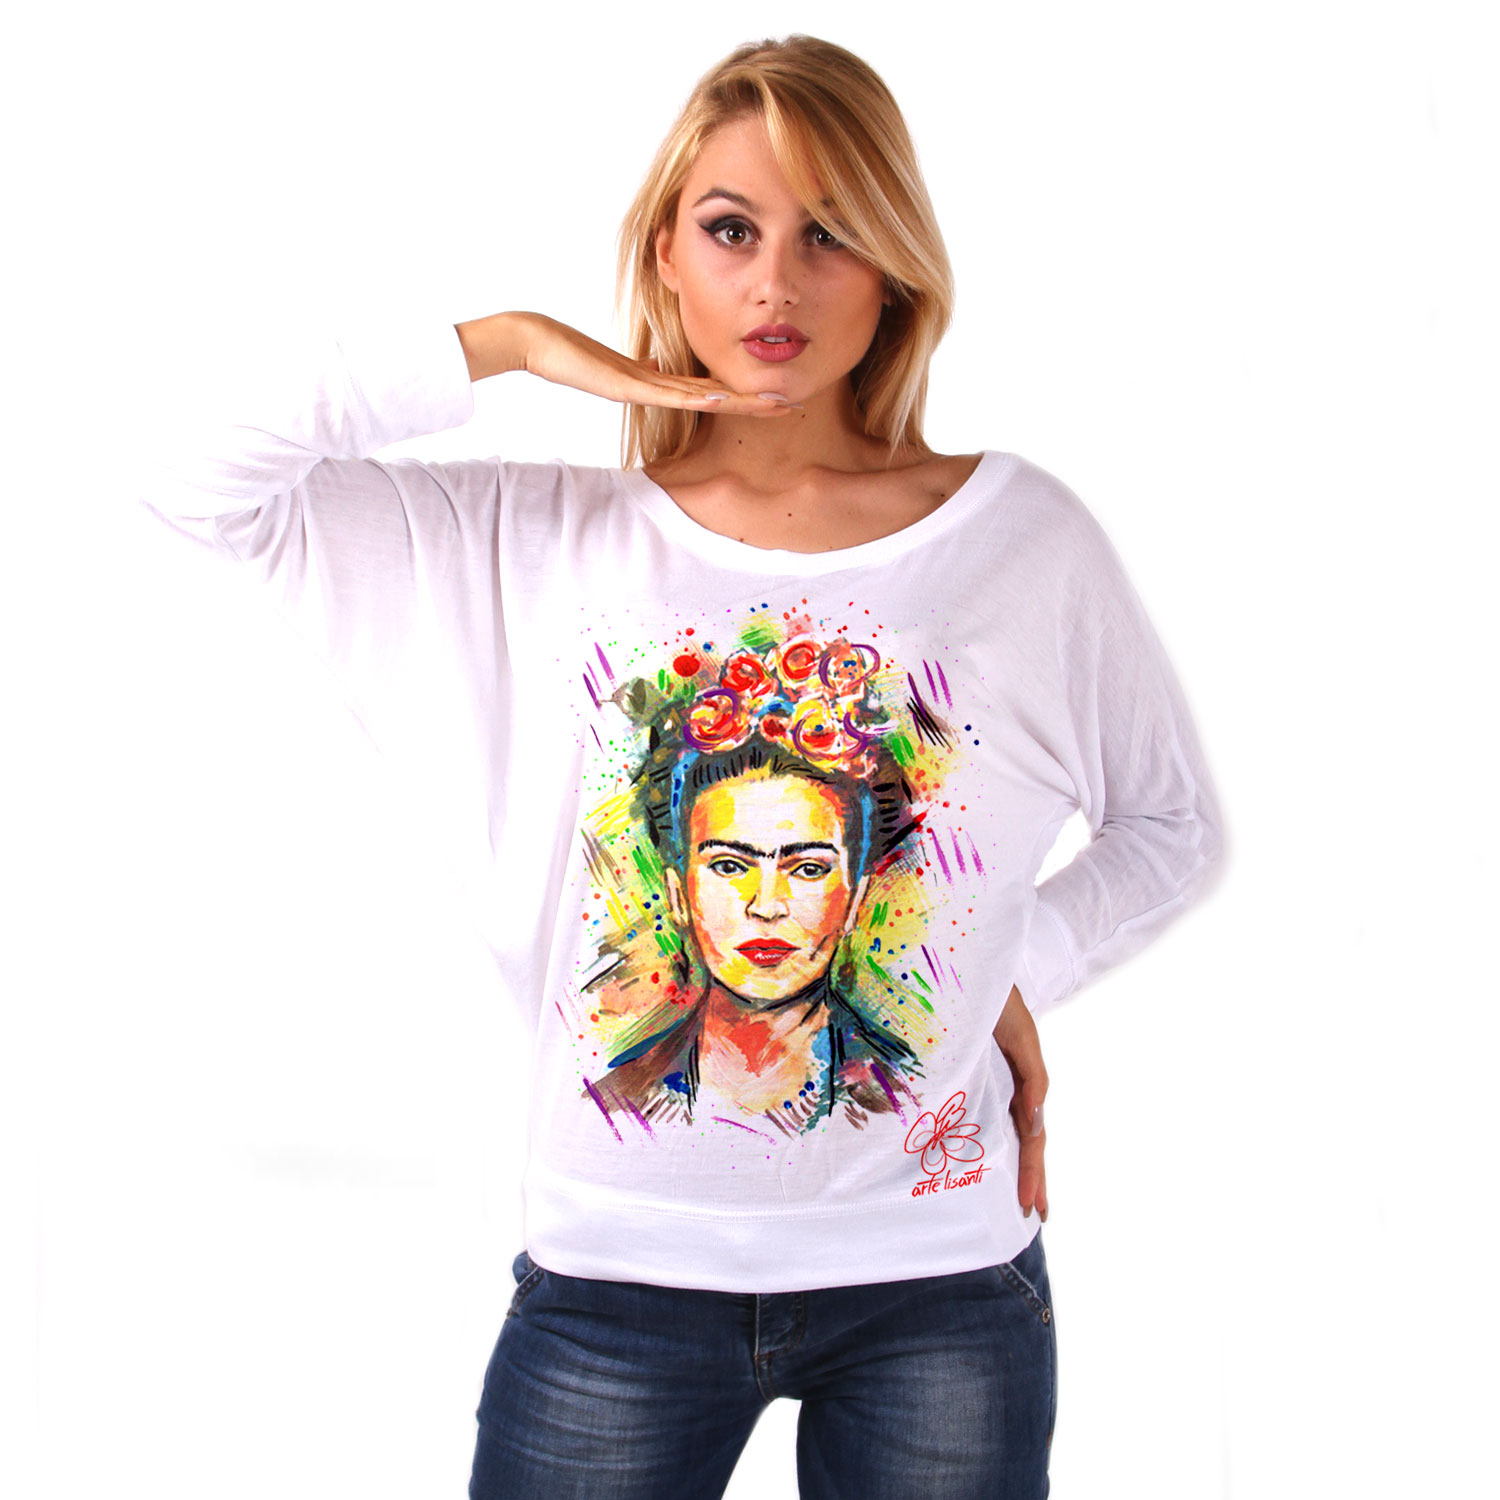 Hand-painted bat shape shirt - I love Frida Kahlo